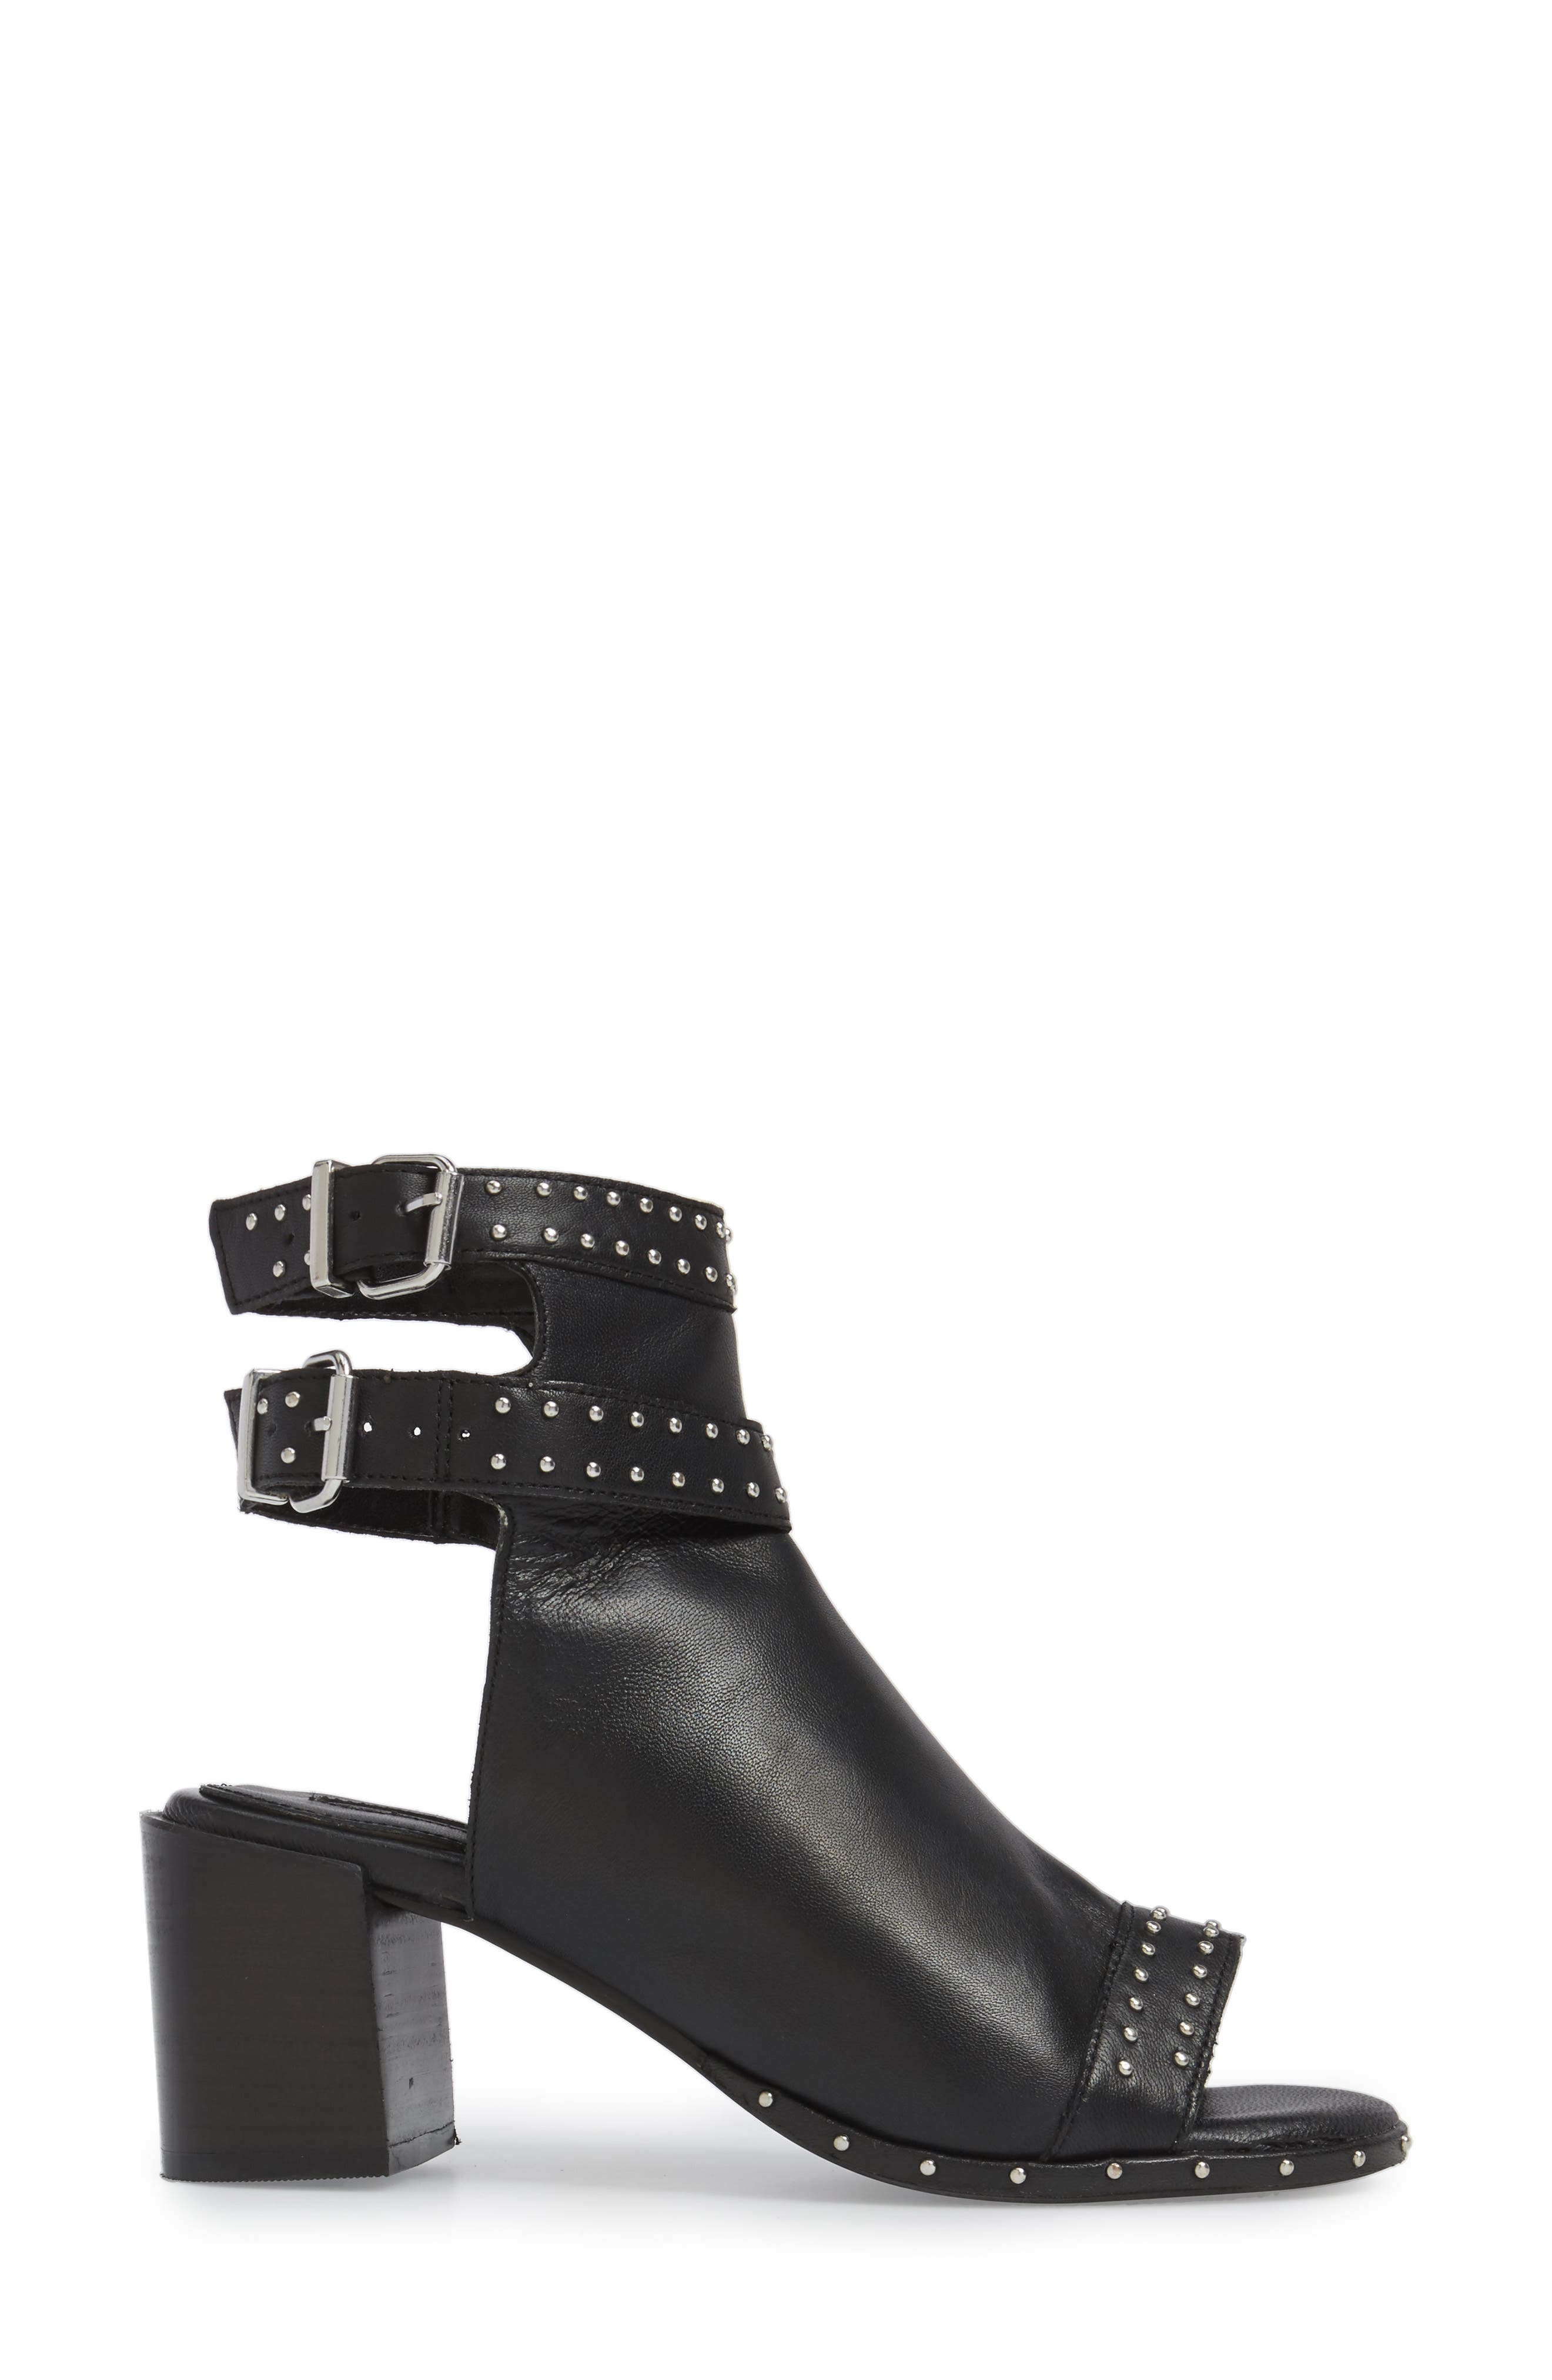 North Studded Bootie Sandal,                             Alternate thumbnail 3, color,                             001